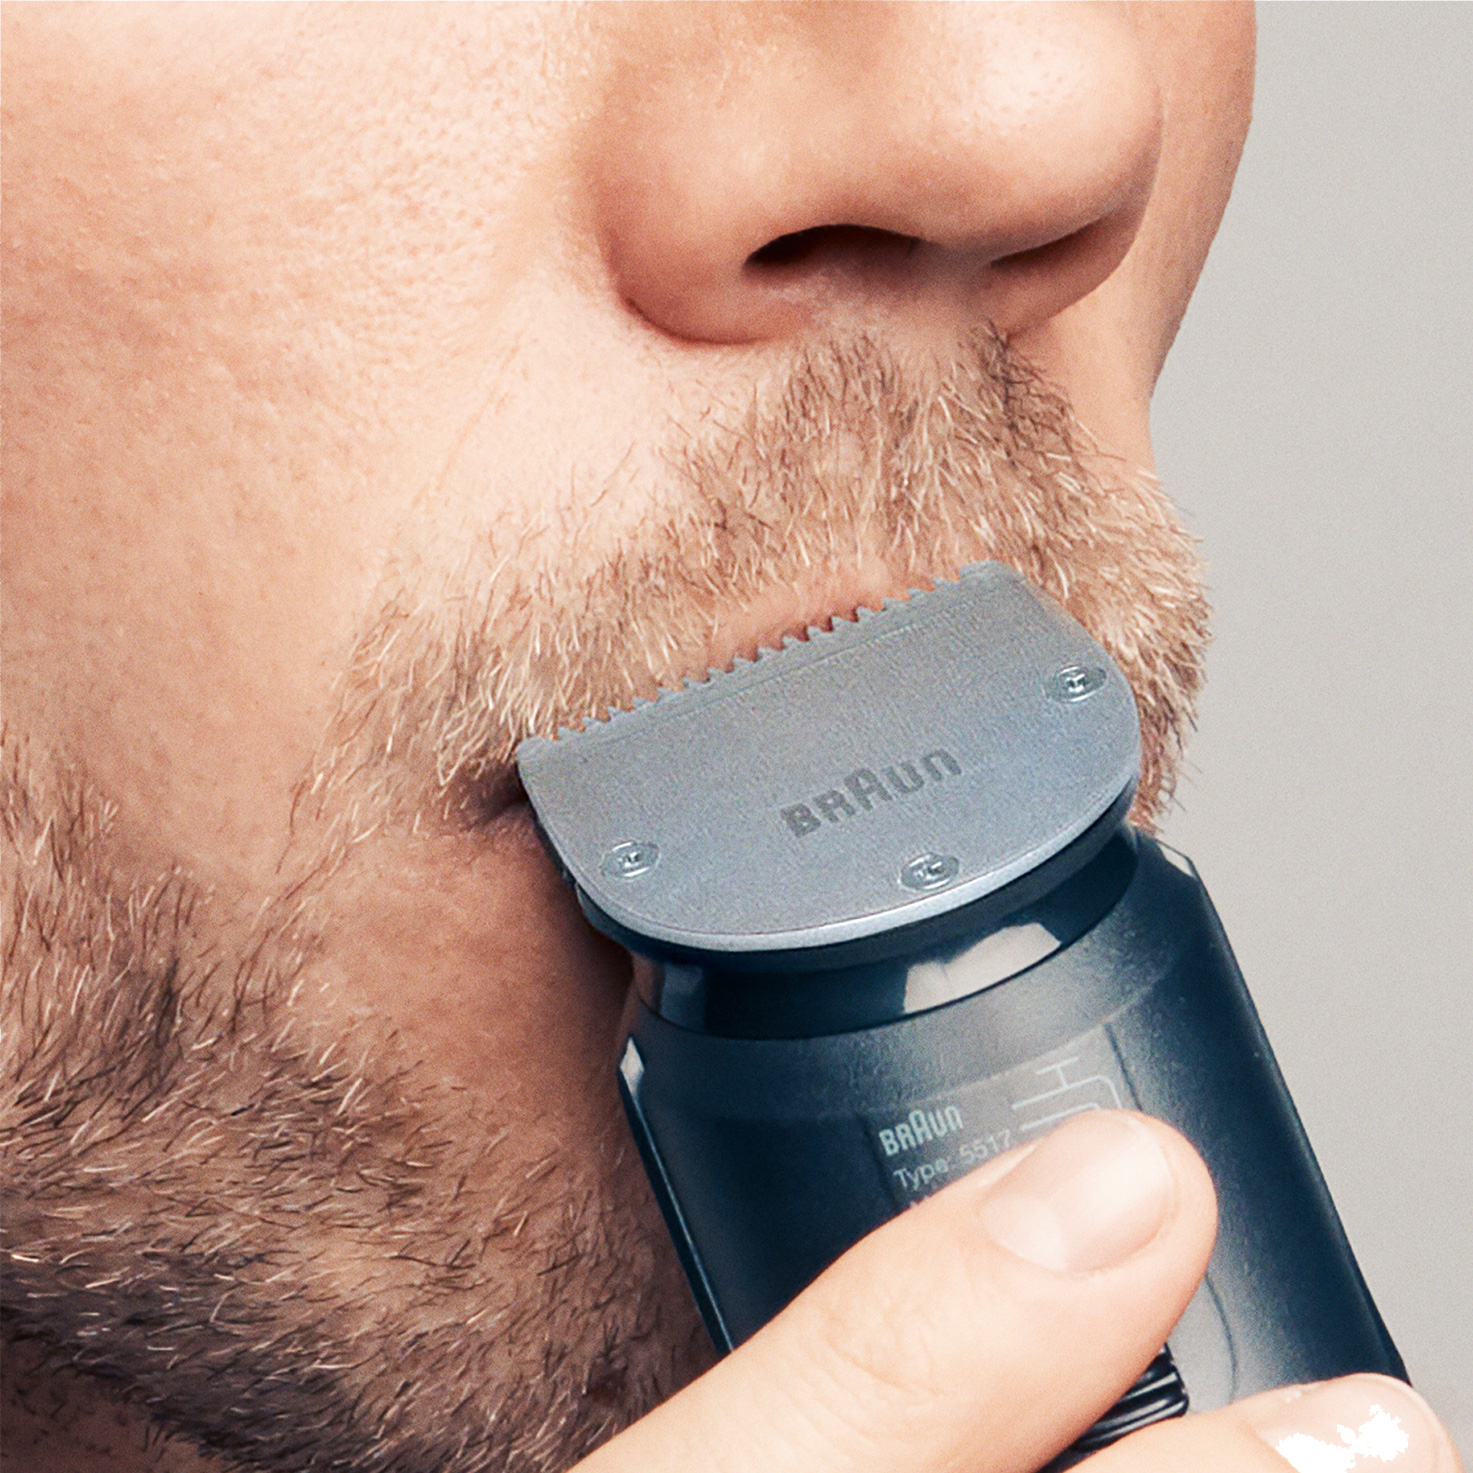 Braun All-in-one trimmer MGK7021 - In use